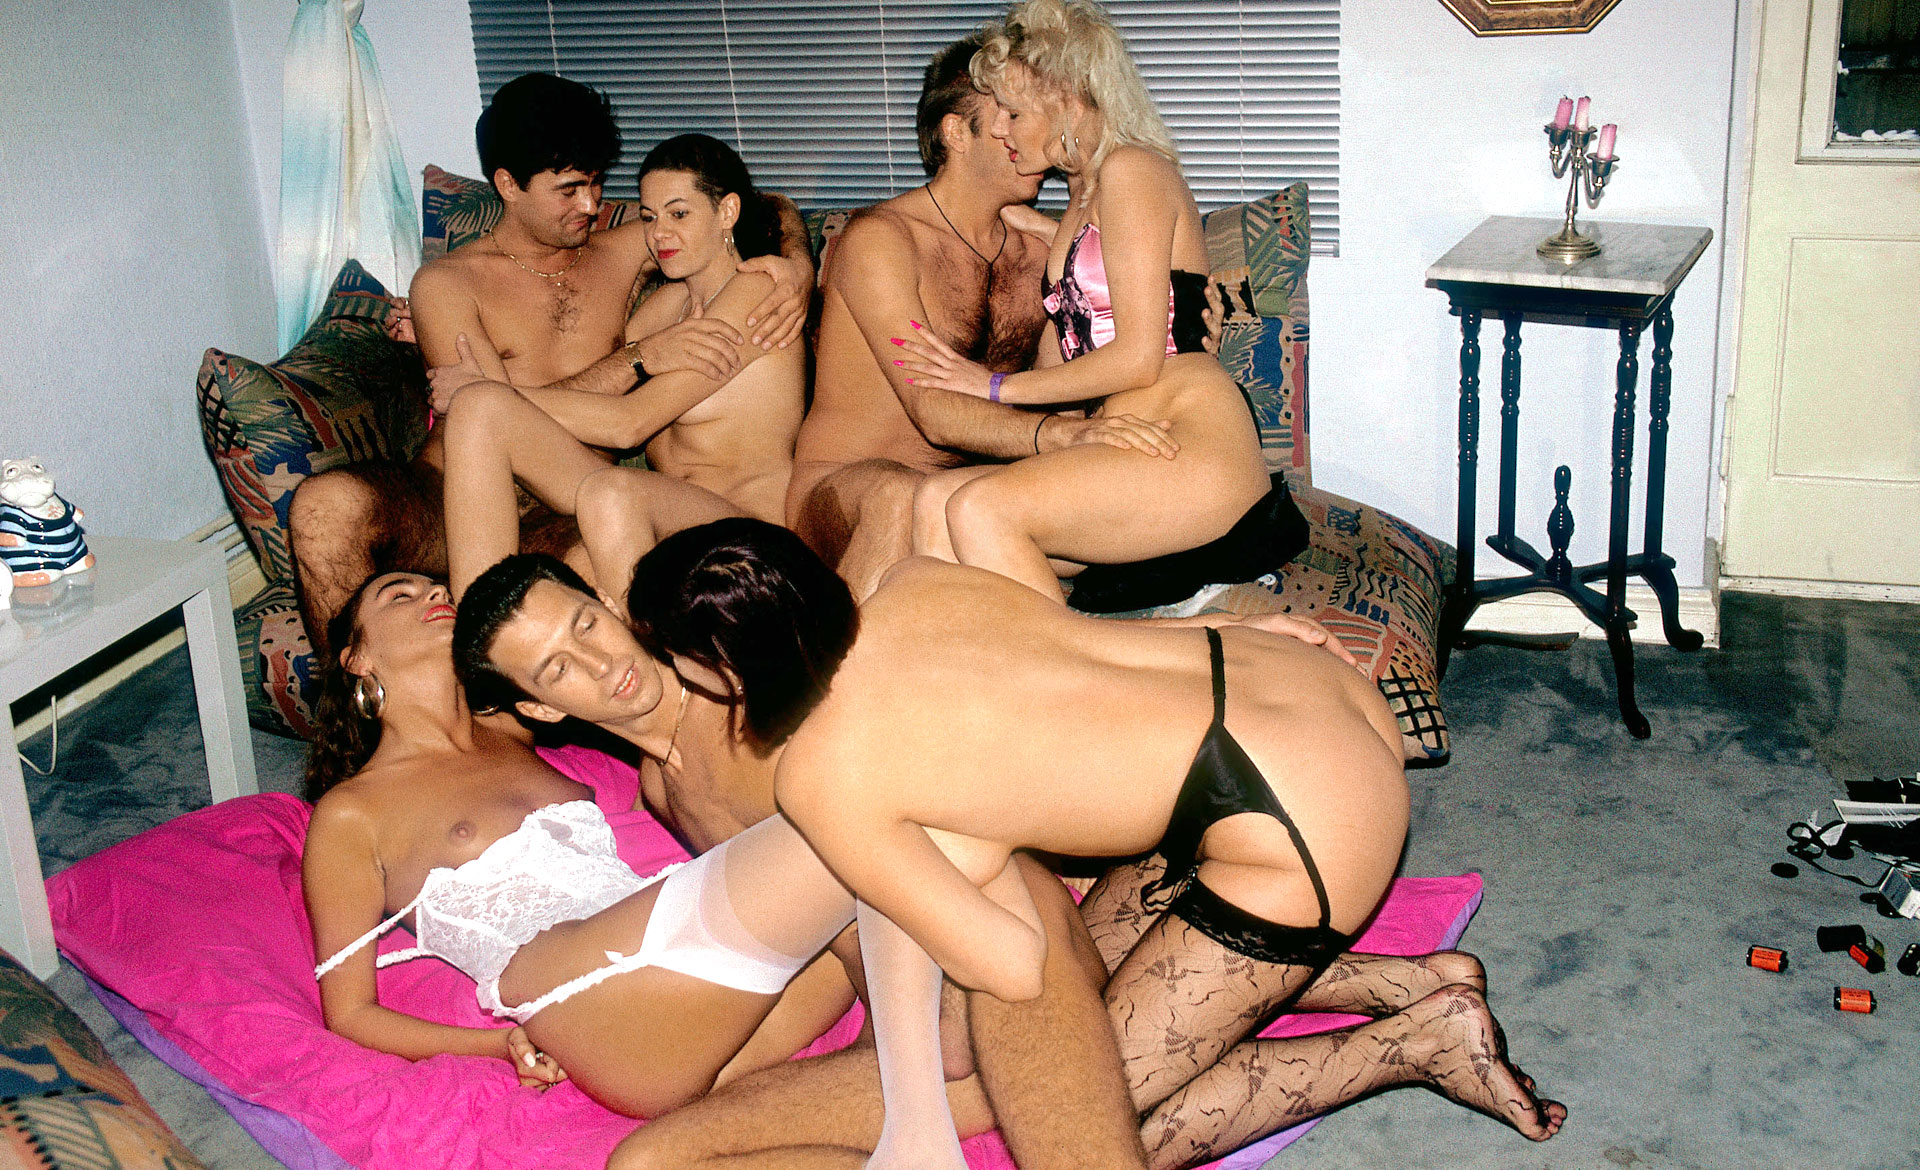 sex im lkw swinger party sex